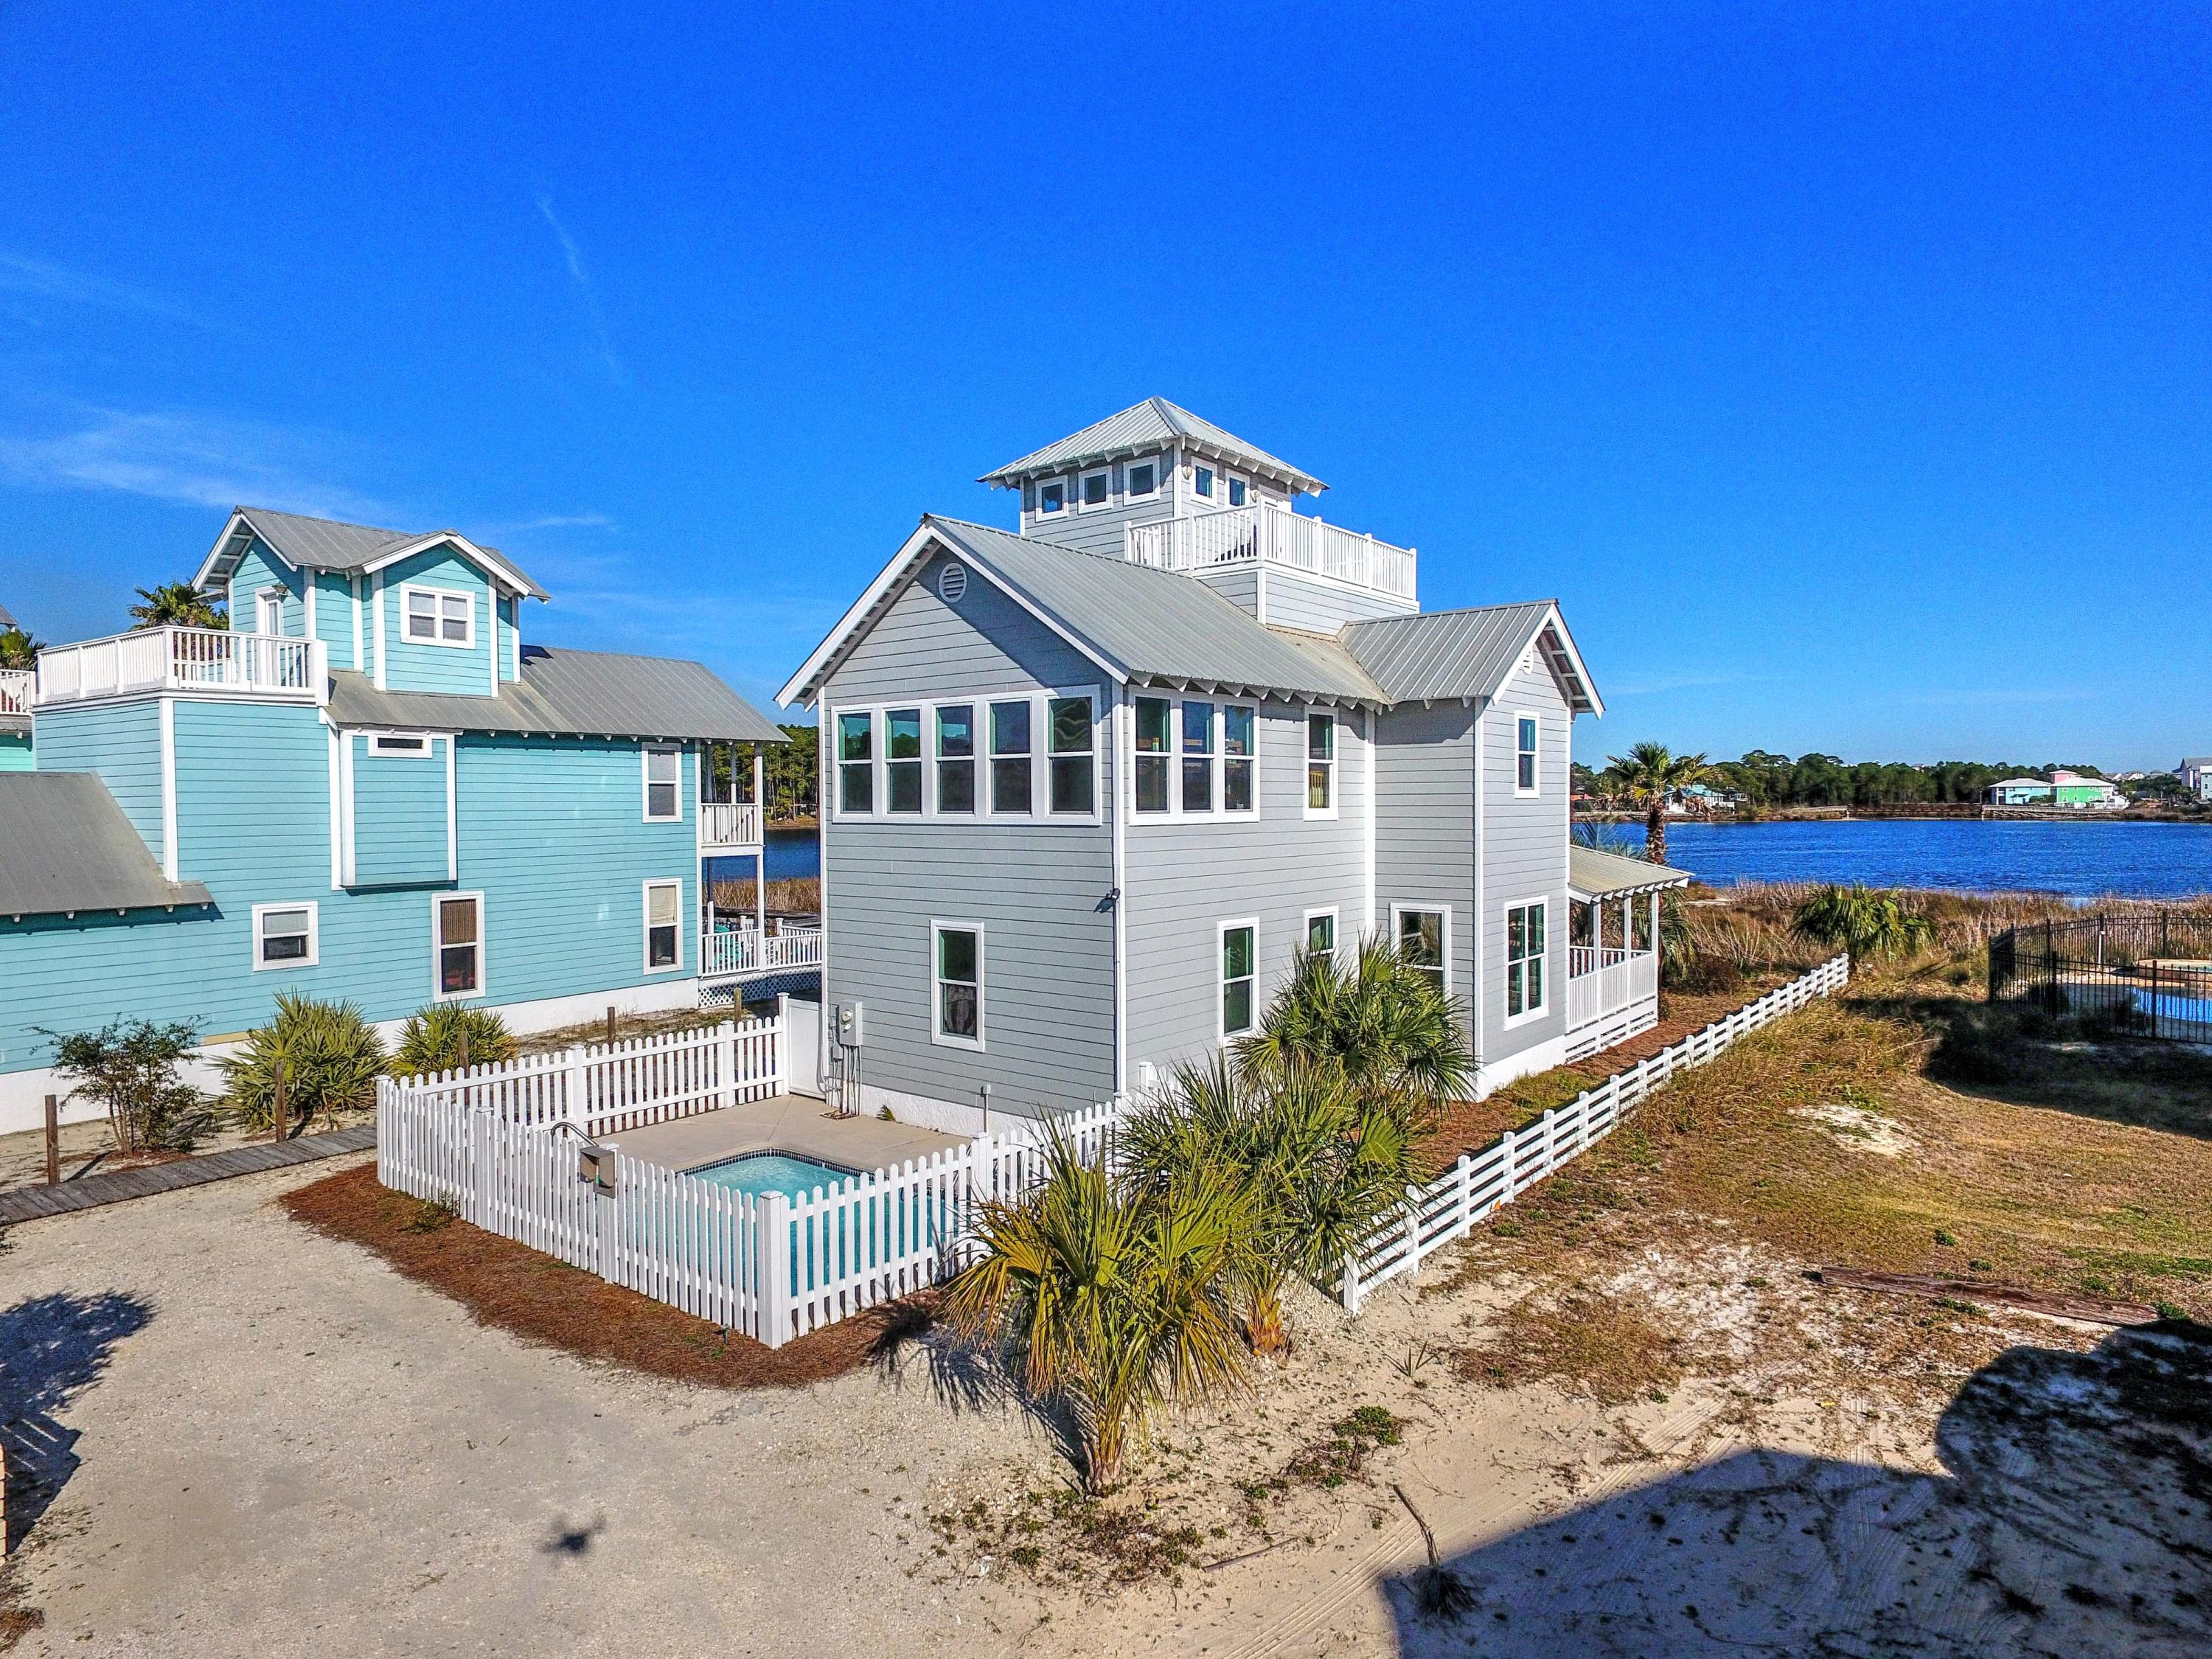 Picturesque vistas abound from this fully furnished, four-bedroom, three-bathroom, coastal masterpiece featuring unobstructed views of the Gulf of Mexico and over 50 feet of waterfront on world-renowned Oyster Lake.  Located just steps from the stunning white sand beaches & dunes of the Gulf of Mexico, this luxuriously designed 2,016 square foot Dune Allen home has finally been exposed to the market and artfully combines coastal design with classic architecture indicative of quintessential Dune Allen and its beautiful, pristine surroundings. Positioned at the southernmost point of Oyster Lake and boasting over one-third of an acre, 21 Sugar Beach Drive is perched at one of the highest elevations in Dune Allen with private access and no through traffic, and no HOA. The architectural detailing of this home serves as a canvas for extraordinary views of two of Florida's most coveted waterways, Oyster Lake, and Dune Allen beach on the Gulf of Mexico, and the community's hallmark dock which is shared with two historical Dune Allen homes. Notable features include abundant natural lighting and water views from every level of the home, hurricane resistant doors and windows, two brand new HVAC systems, brand new pool pump, brand new fence, and fresh paint on the interior and exterior, hard wood floors in the main living areas, tile in the bathrooms, granite counter tops in the kitchen, a handmade custom backsplash in the kitchen, and a gourmet kitchen with spacious countertops and cabinets.  Every day features a view toward shimmering Oyster Lake and magnificent sunrises, afternoon dips in your private pool, and evenings watching 30a sunsets from your 3rd floor watchtower. In addition, the first floor features an oversized living and dining room. There is also an in-law suite and full bath on the main level off the kitchen. On the 2nd floor, there is a master bedroom with panoramic views of the Gulf and Oyster Lake. There is another guest suite, a separate bunkroom and a full